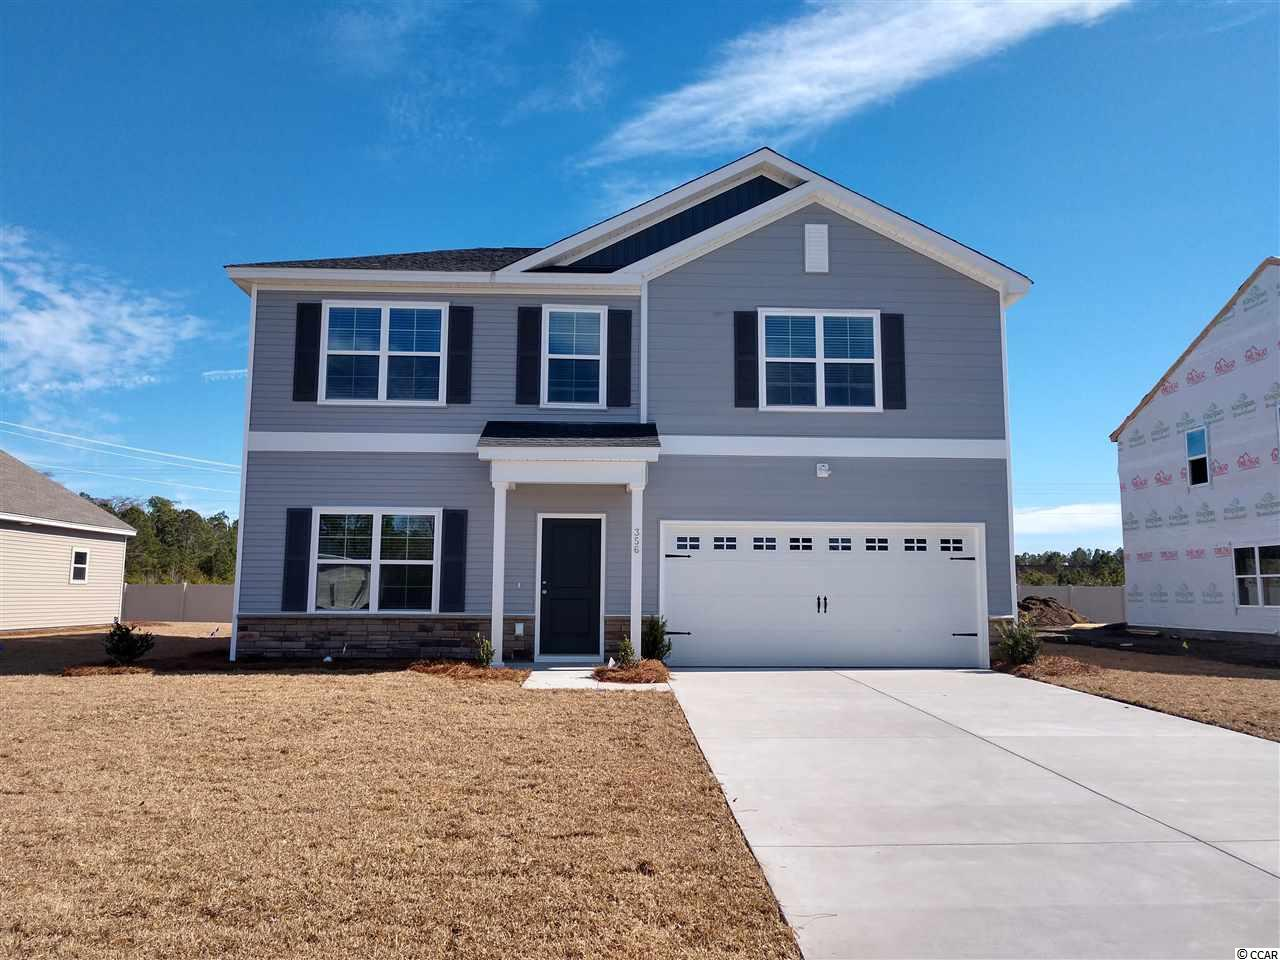 "Natural Gas Community!  Great location - easy access to Conway and Myrtle Beach!  This Telfair plan is under contract for our buyer, but we can be built for you in 6 months!  Please inquire about our current incentives you can take advantage of!  The Telfair plan, with nearly 2,800 htd sq ft, starts with 4 bed/2.5 baths, with Flex/office space, formal dining room, and a large loft upstairs too!  The flex space - 1/2 bath can be converted to a Guest Bedroom with full bath downstairs.  Another bedroom/full bath can be added upstairs too - this home can have up to 6 bed/4 baths!  Included features: Architectural shingles, smooth ceilings/walls, 9' ceilings 1st floor, granite in kitchen, 36"" cabinets, tankless gas hotwater, gas heat, opt gas log fireplace, opt gas kitchen appliance package, and more.  Come see why Mungo Homes should be on your shopping list!  Photos shown are of another Telfair plan built in Coastal Point.  All measurement are estimates, buyer to verify."